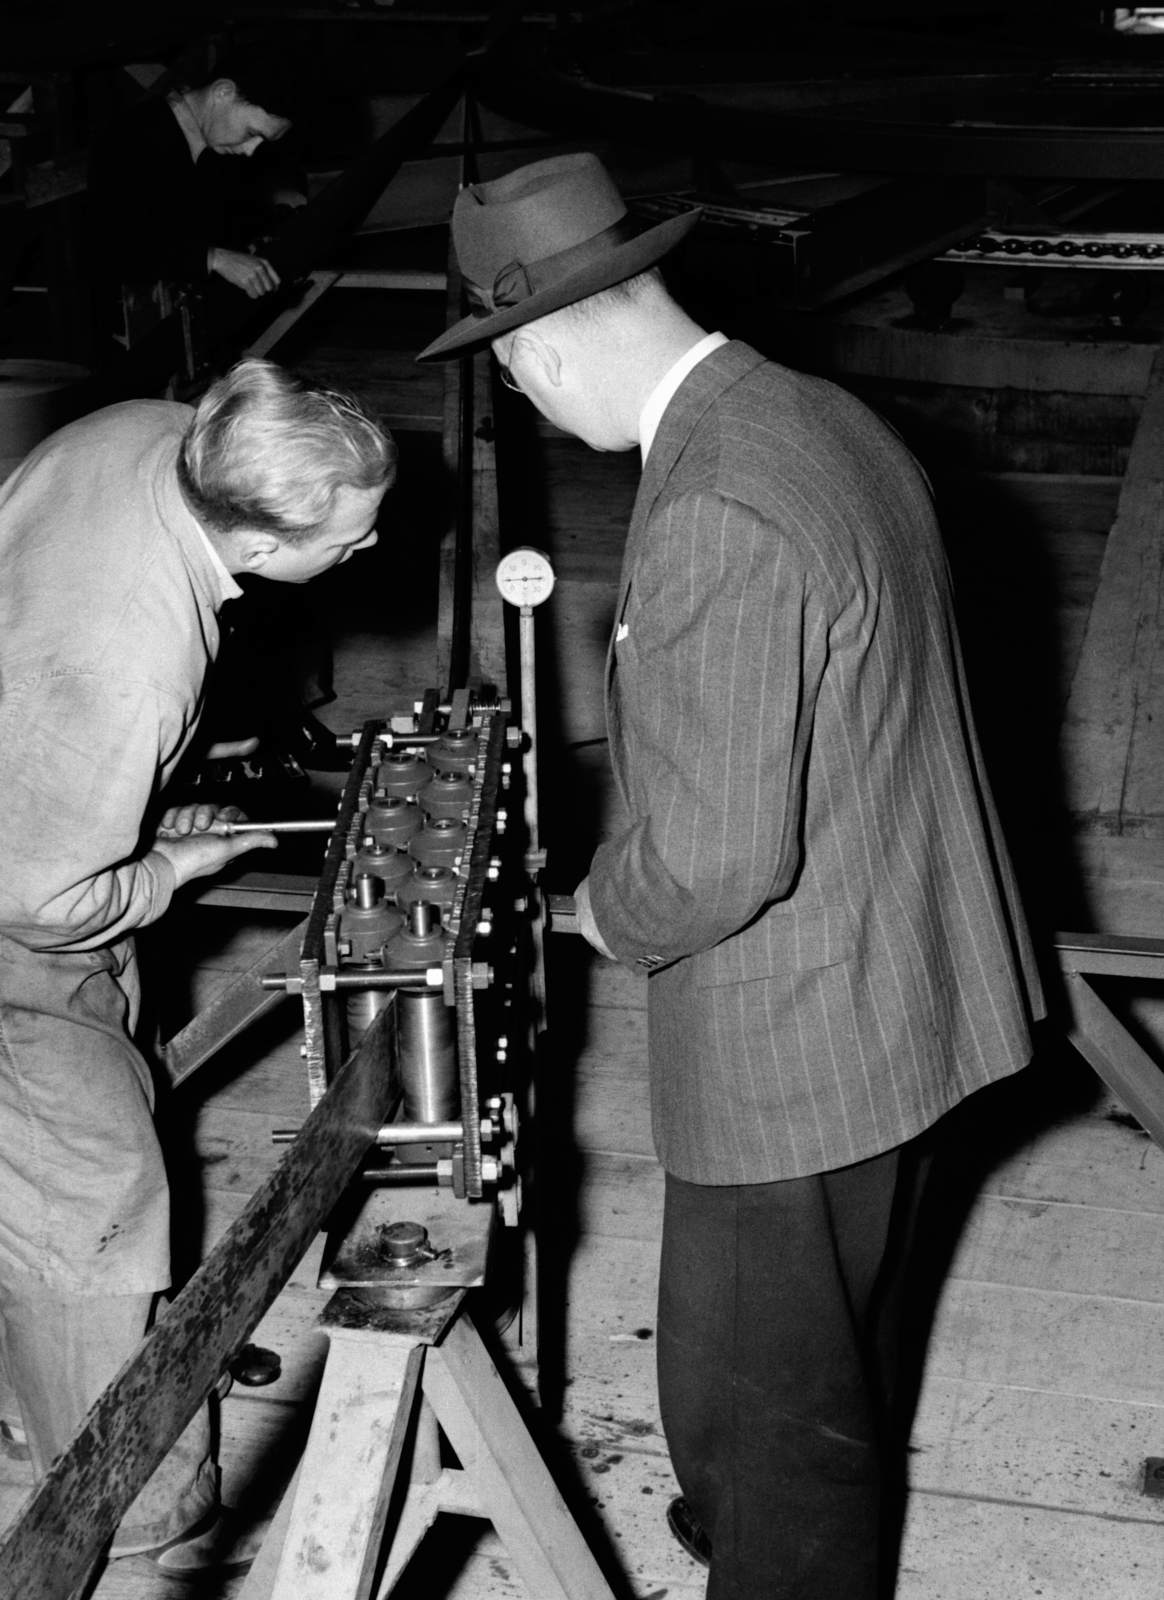 """William C. Twitchell (left) and Wallace B. Reynolds at 184-inch cyclotron coil winding """"leveler"""" straightening copper, taken March 8, 1942. Principal Investigator/Project: Analog Conversion Project [Photographer: Donald Cooksey]"""